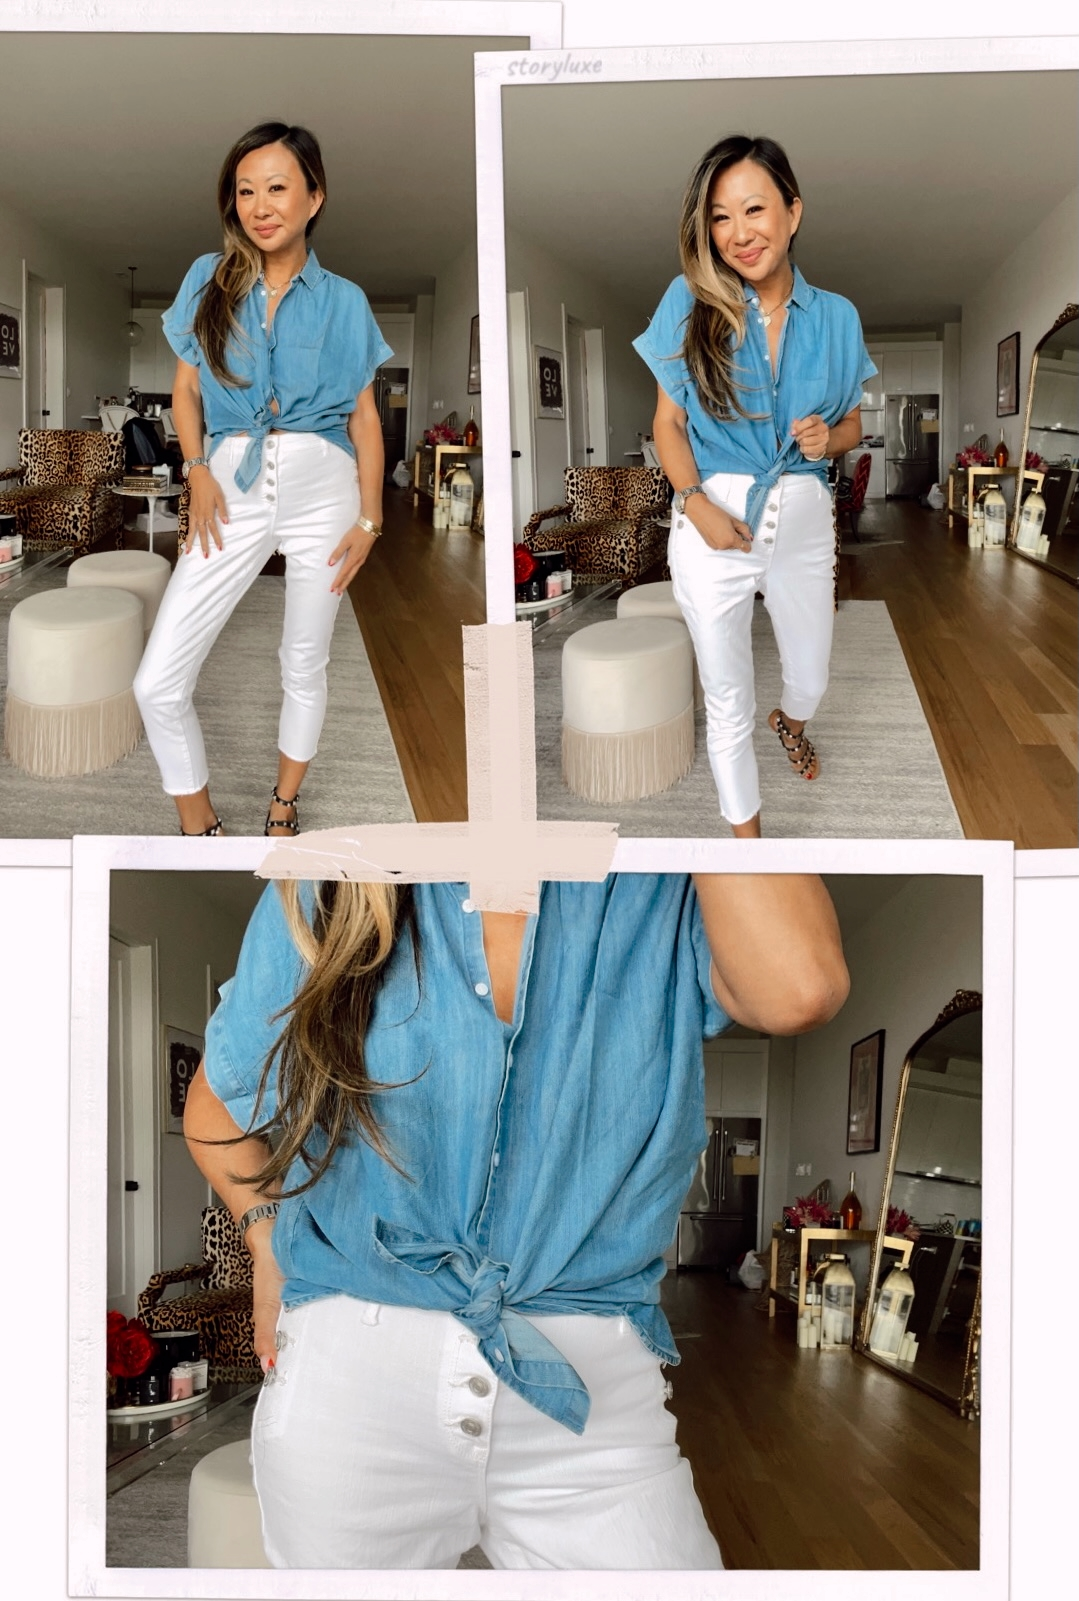 Time and Tru Women's Short Sleeve Button Front Shirt, Sofia Jeans by Sofia Vergara Women's Rosa High-Rise Curvy Sailor Crop Jeans, chambray shirt outfit ideas, white denim outfit ideas, white jeans outfit, denim shirt outfit, walmart style, walmart outfit ideas, summer outfits, summer outfit ideas